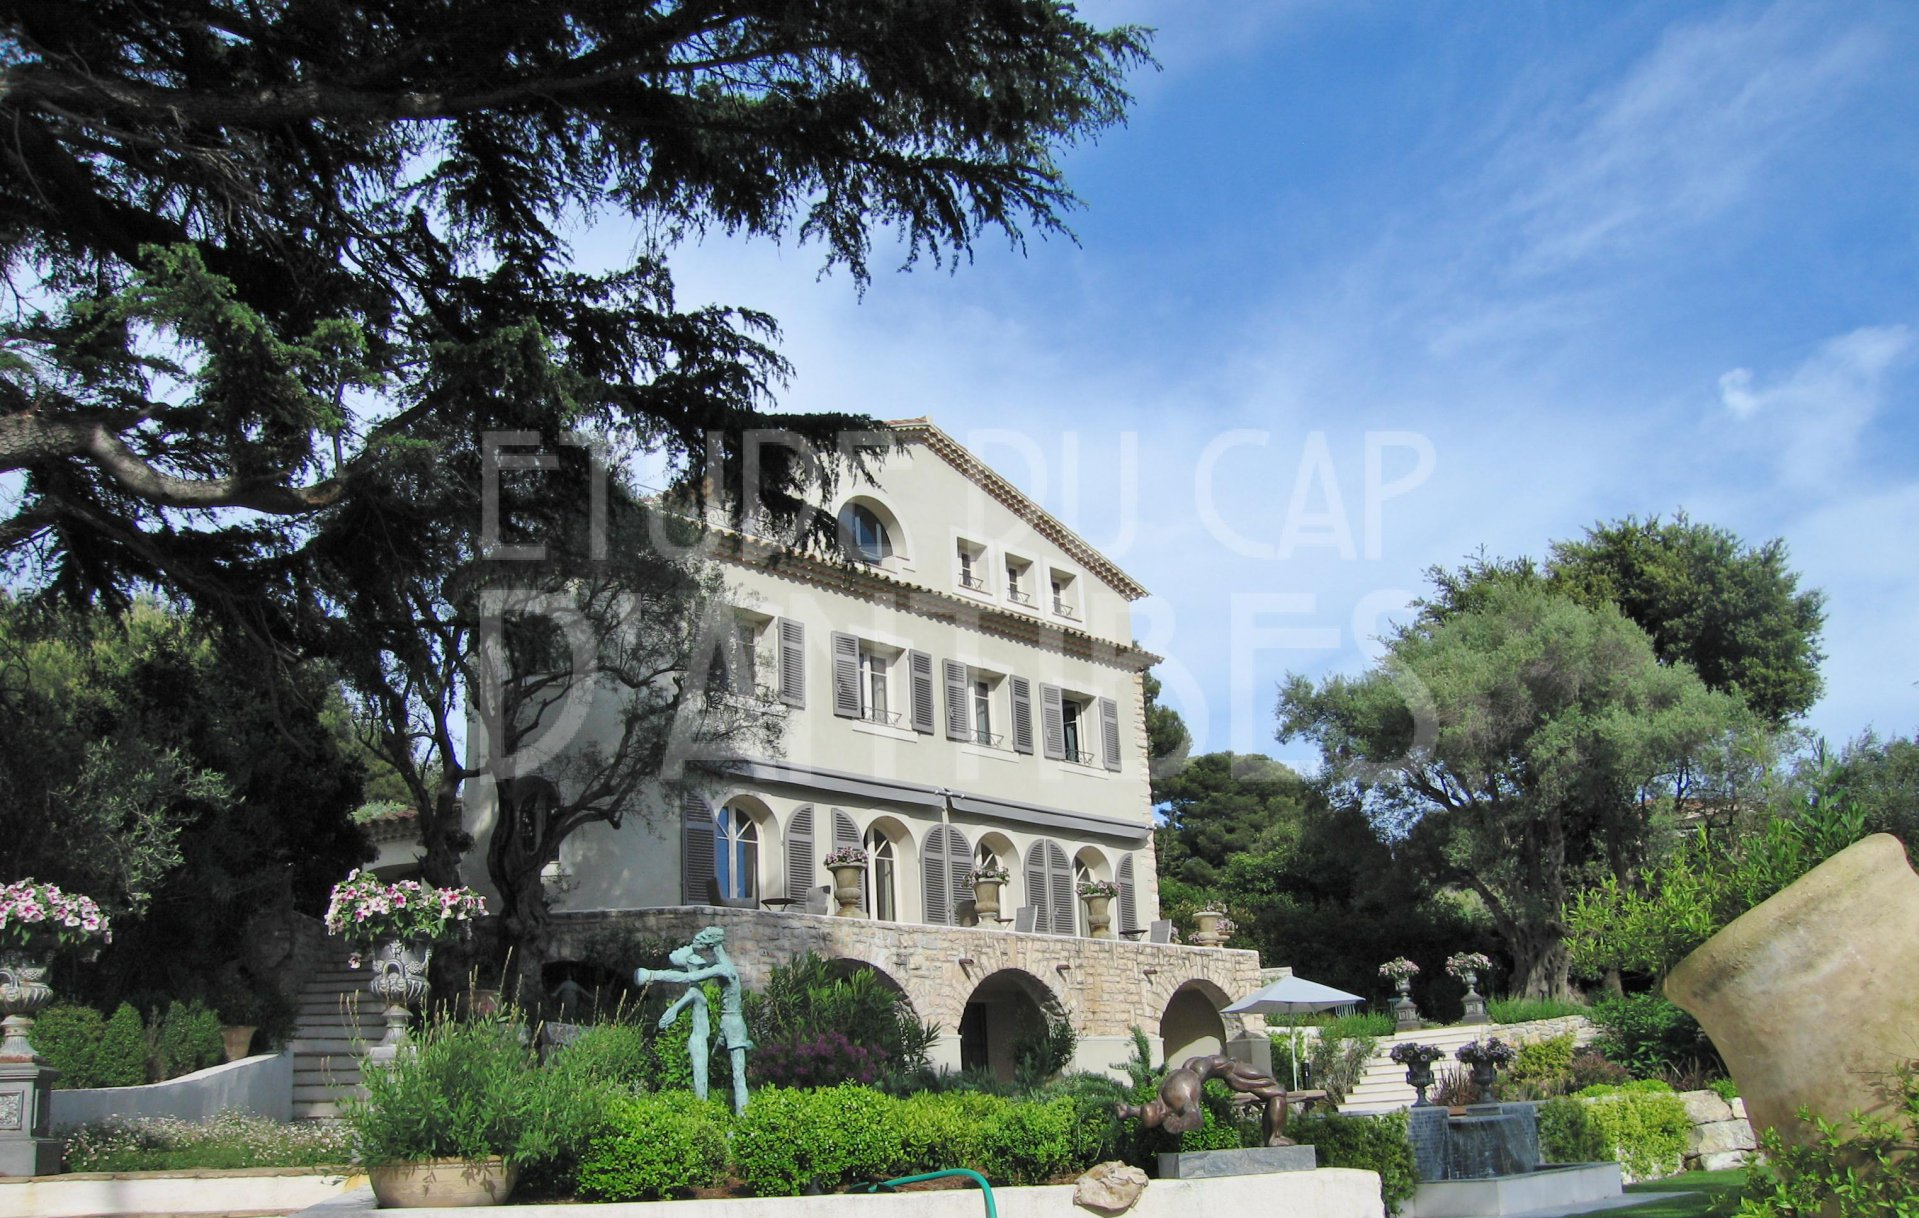 Affitto stagionale Villa - Cap d'Antibes